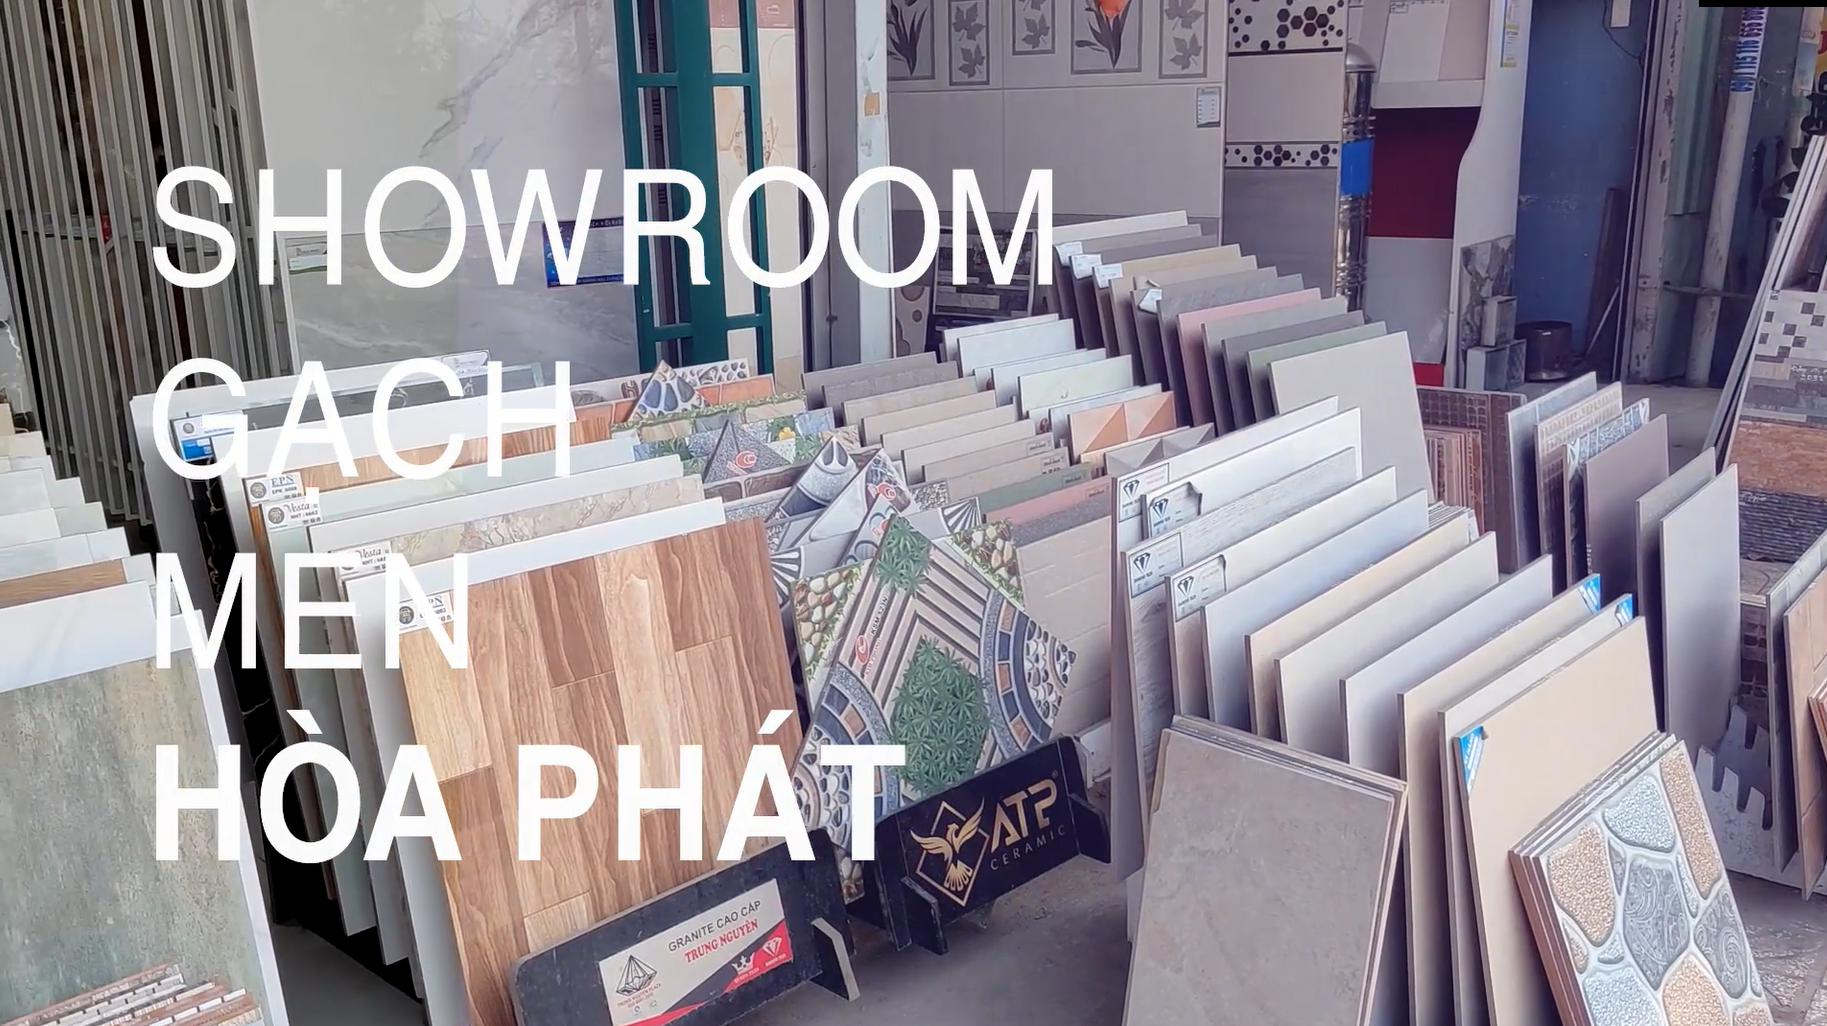 showroom-gach-men-hoa-phat